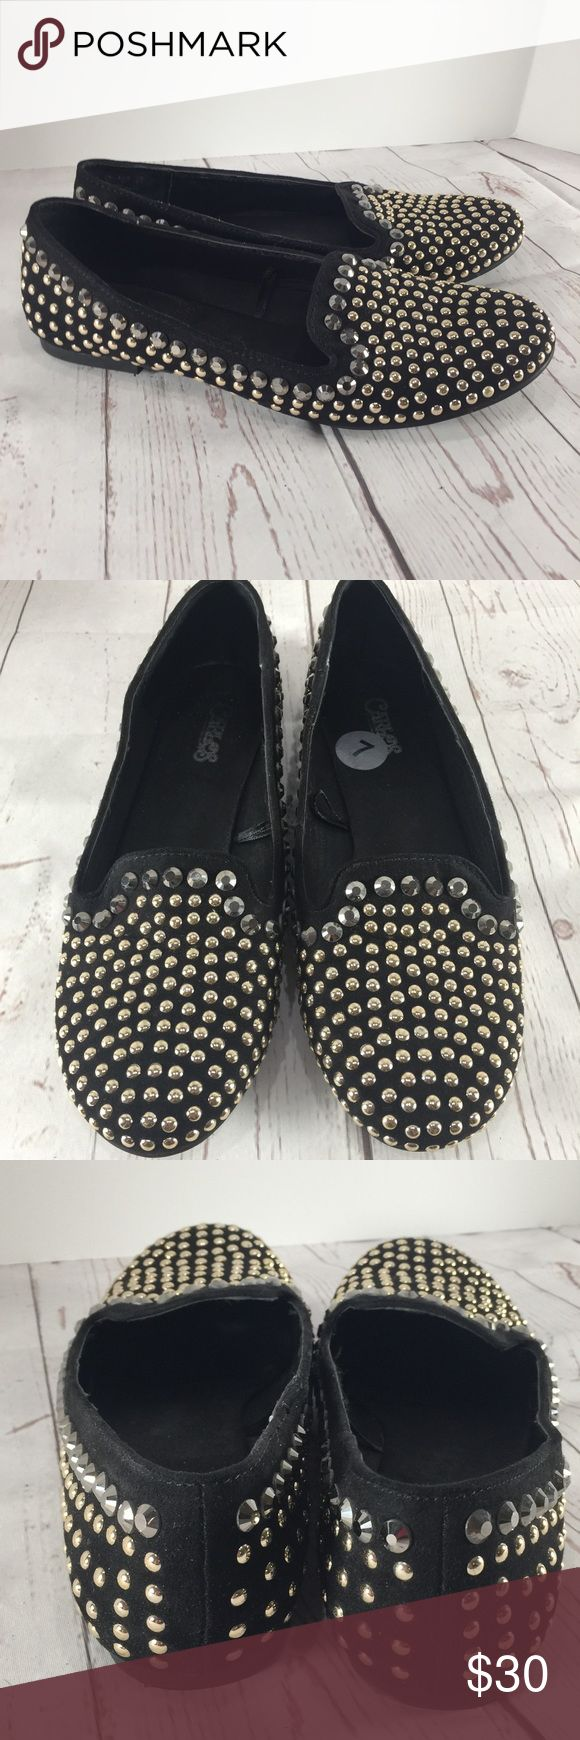 ✨Carlos Santana Studded Loafers Size 7✨ Carlos Santana Studded Loafers Size 7, beautiful shoes, only used once; almost new. Take a look at the pictures for more details Carlos Santana Shoes Flats & Loafers